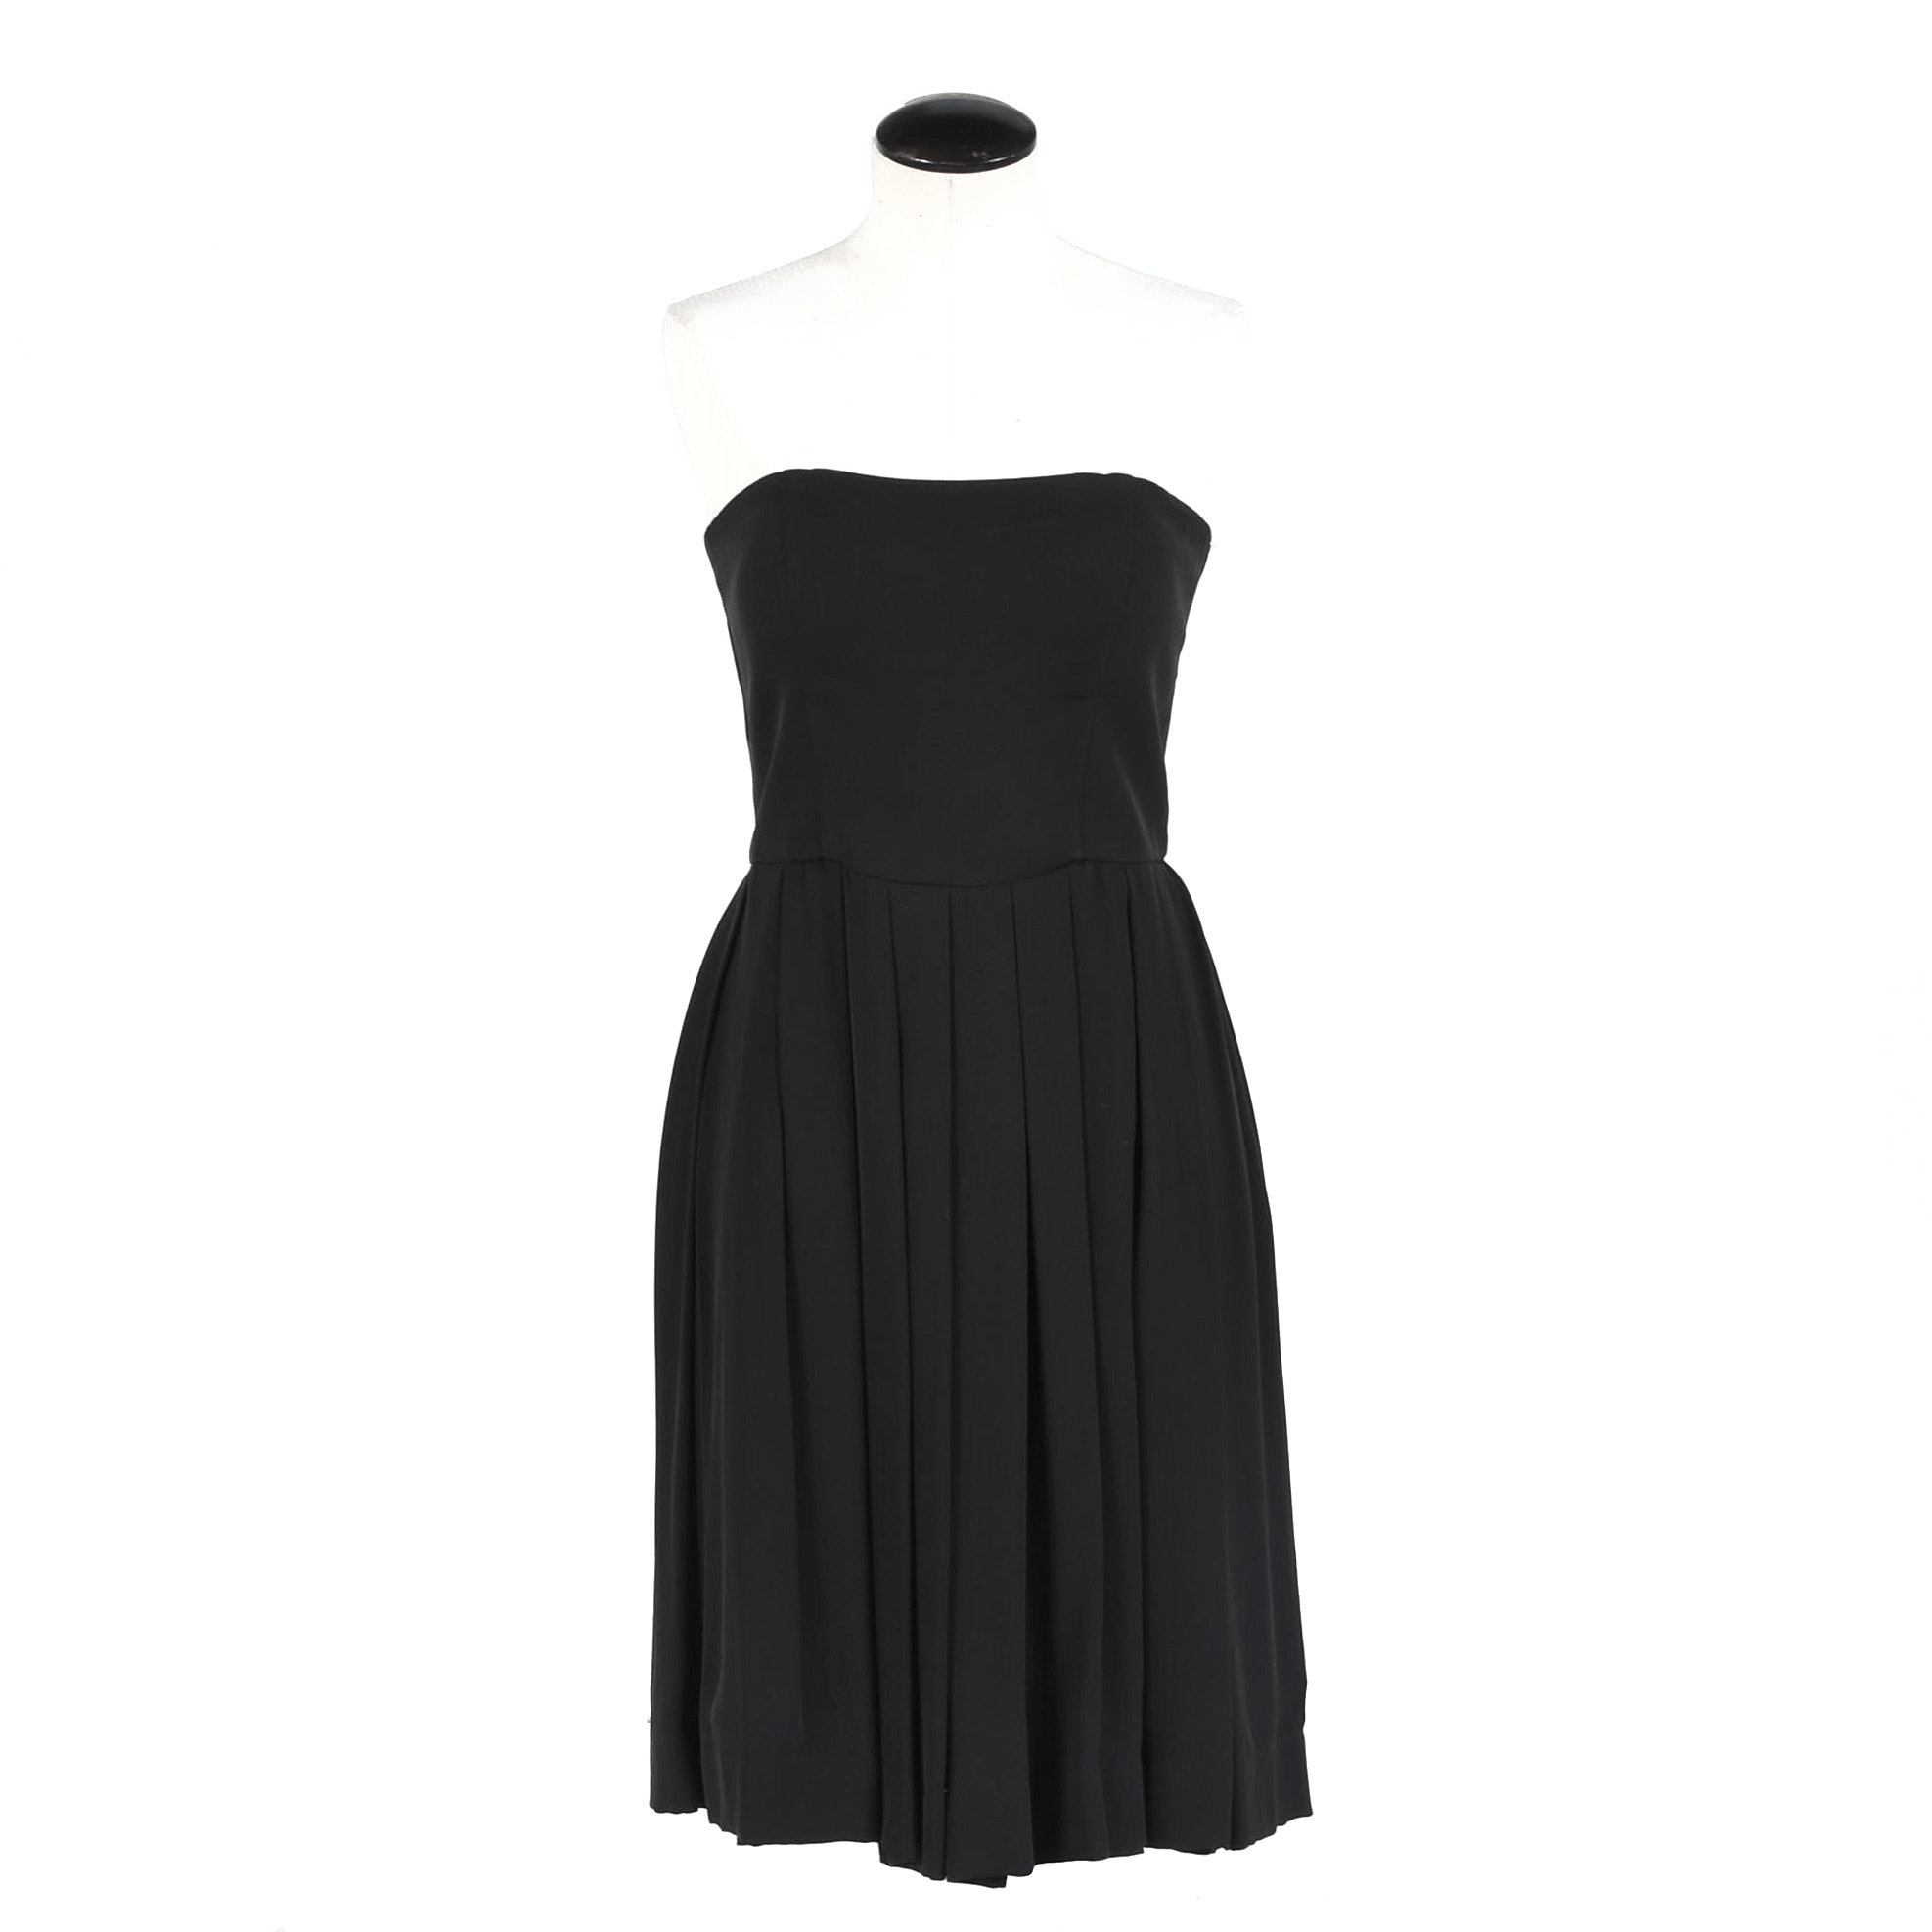 Armani Collezioni Black Silk Strapless Dress, made in Italy